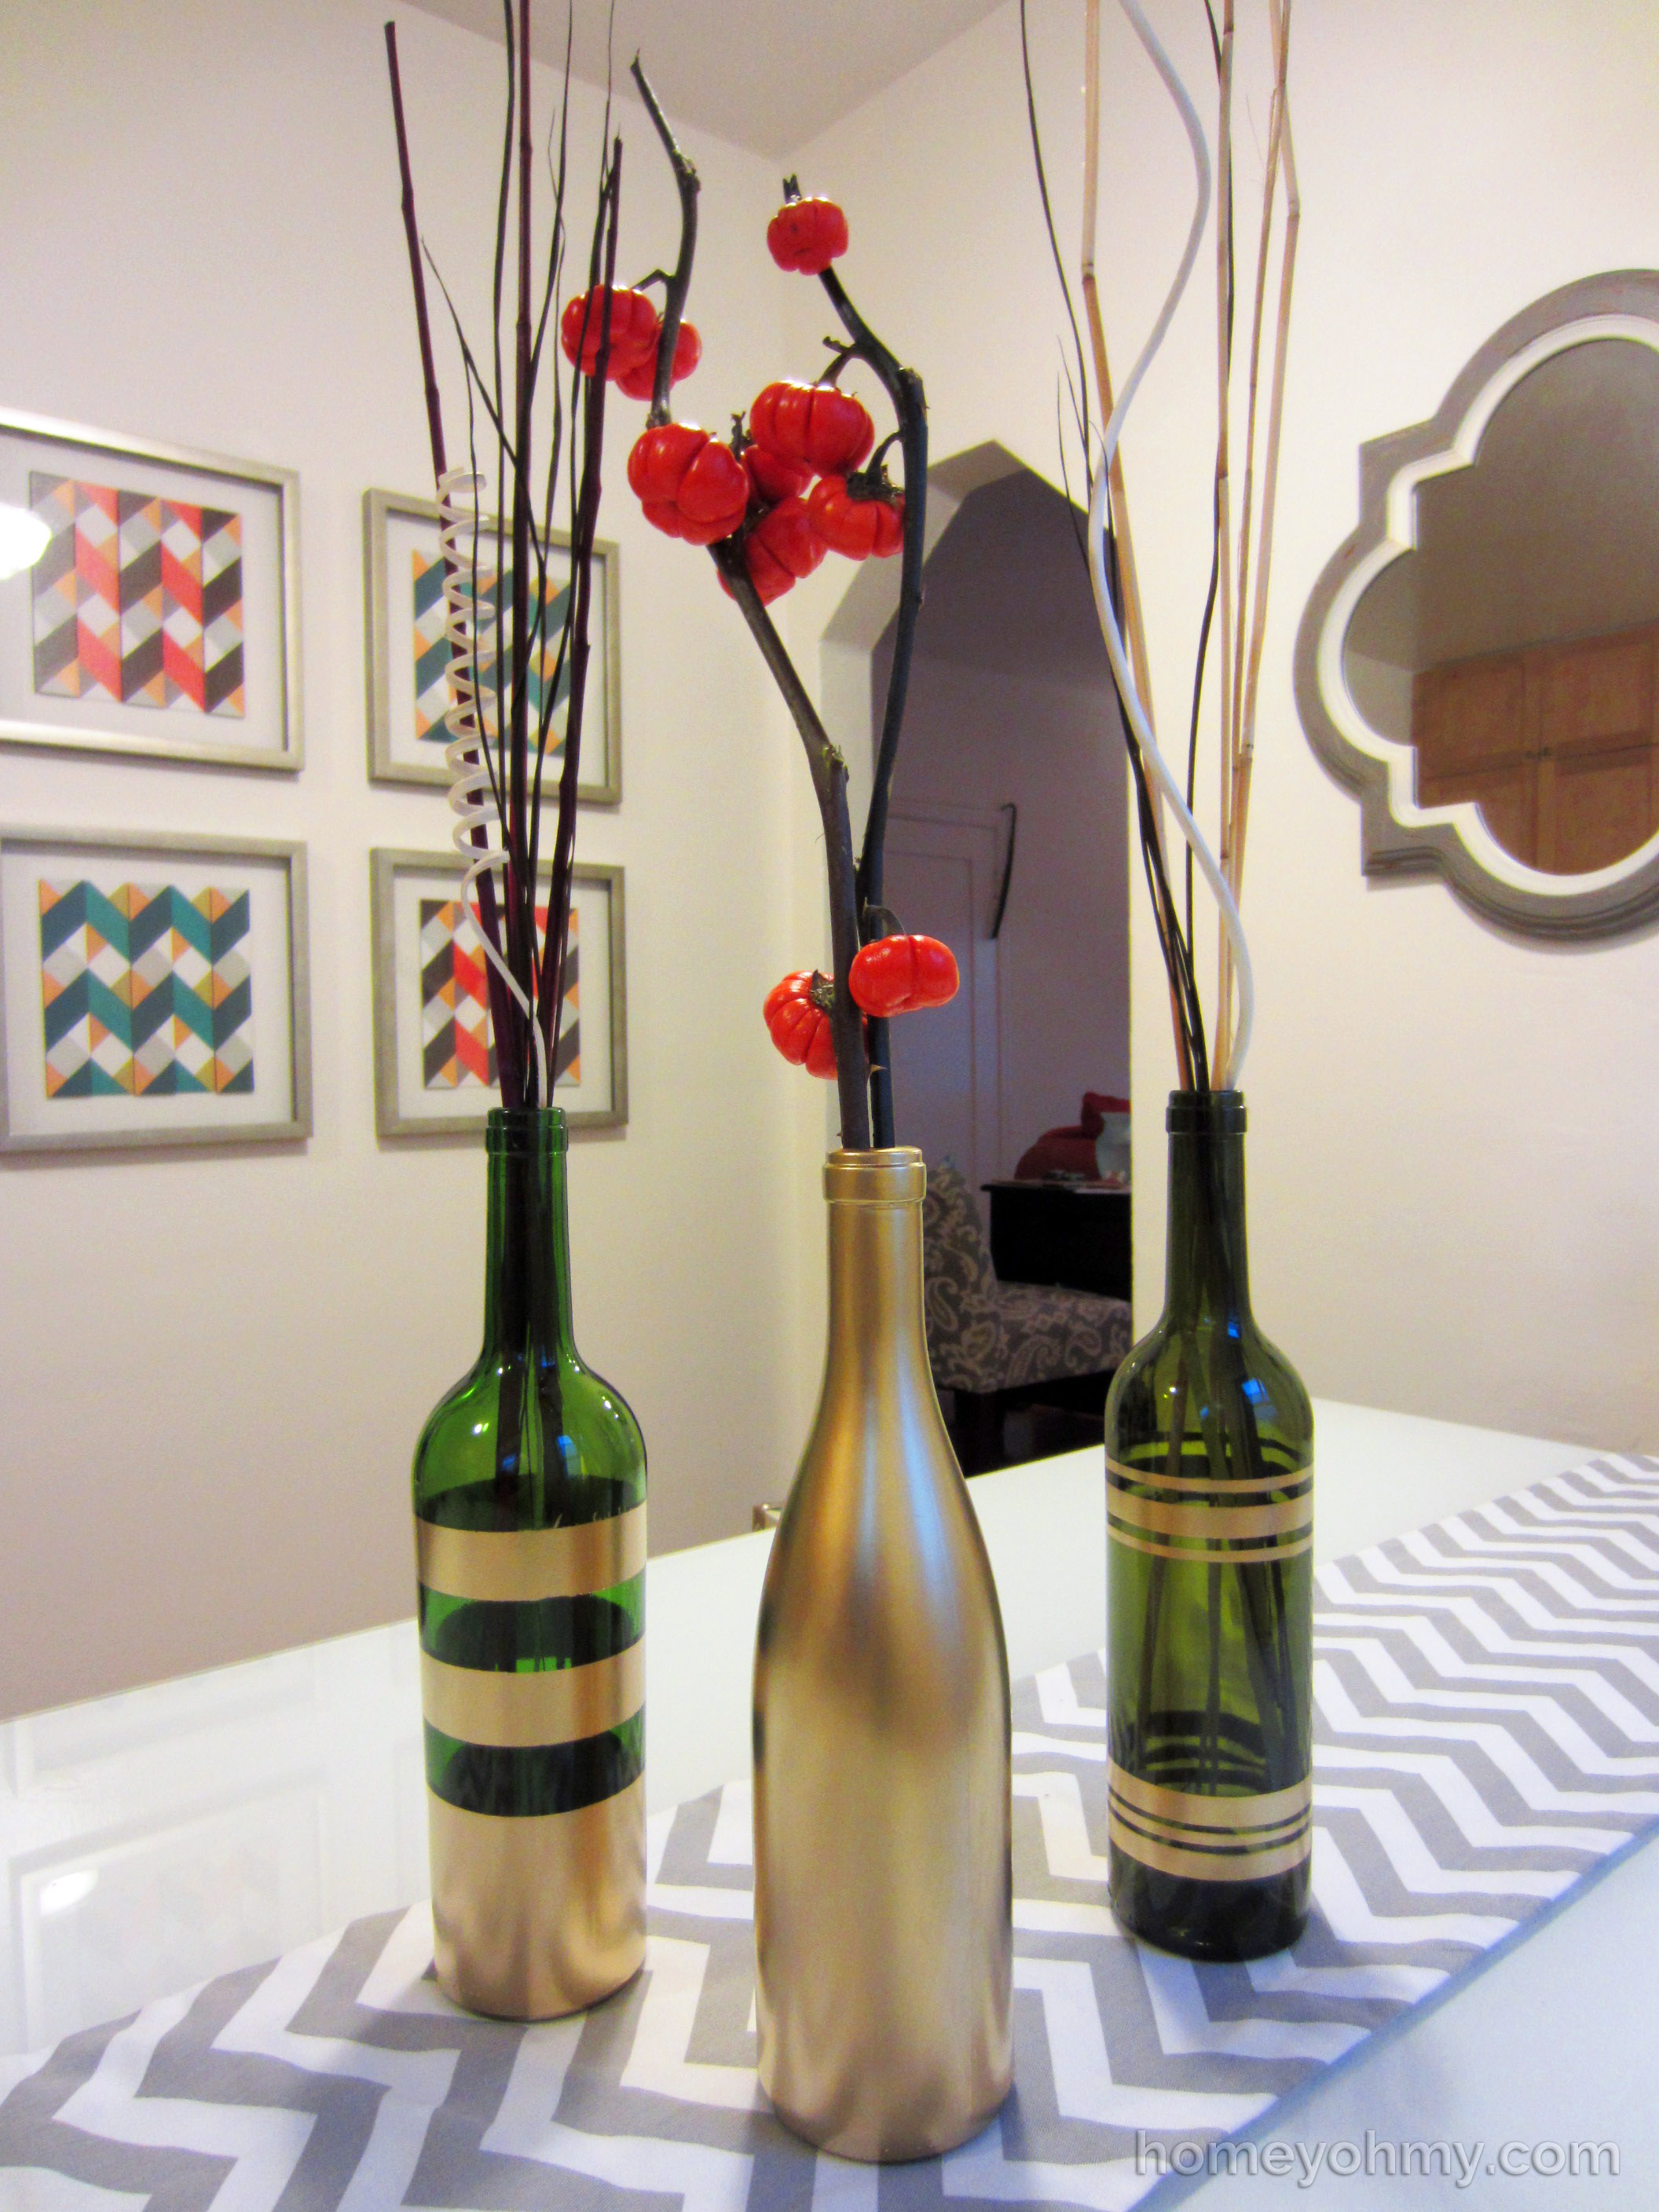 Superb Spray Paint Decor Ideas Part - 13: DIY Spray Painted Wine Bottles 3